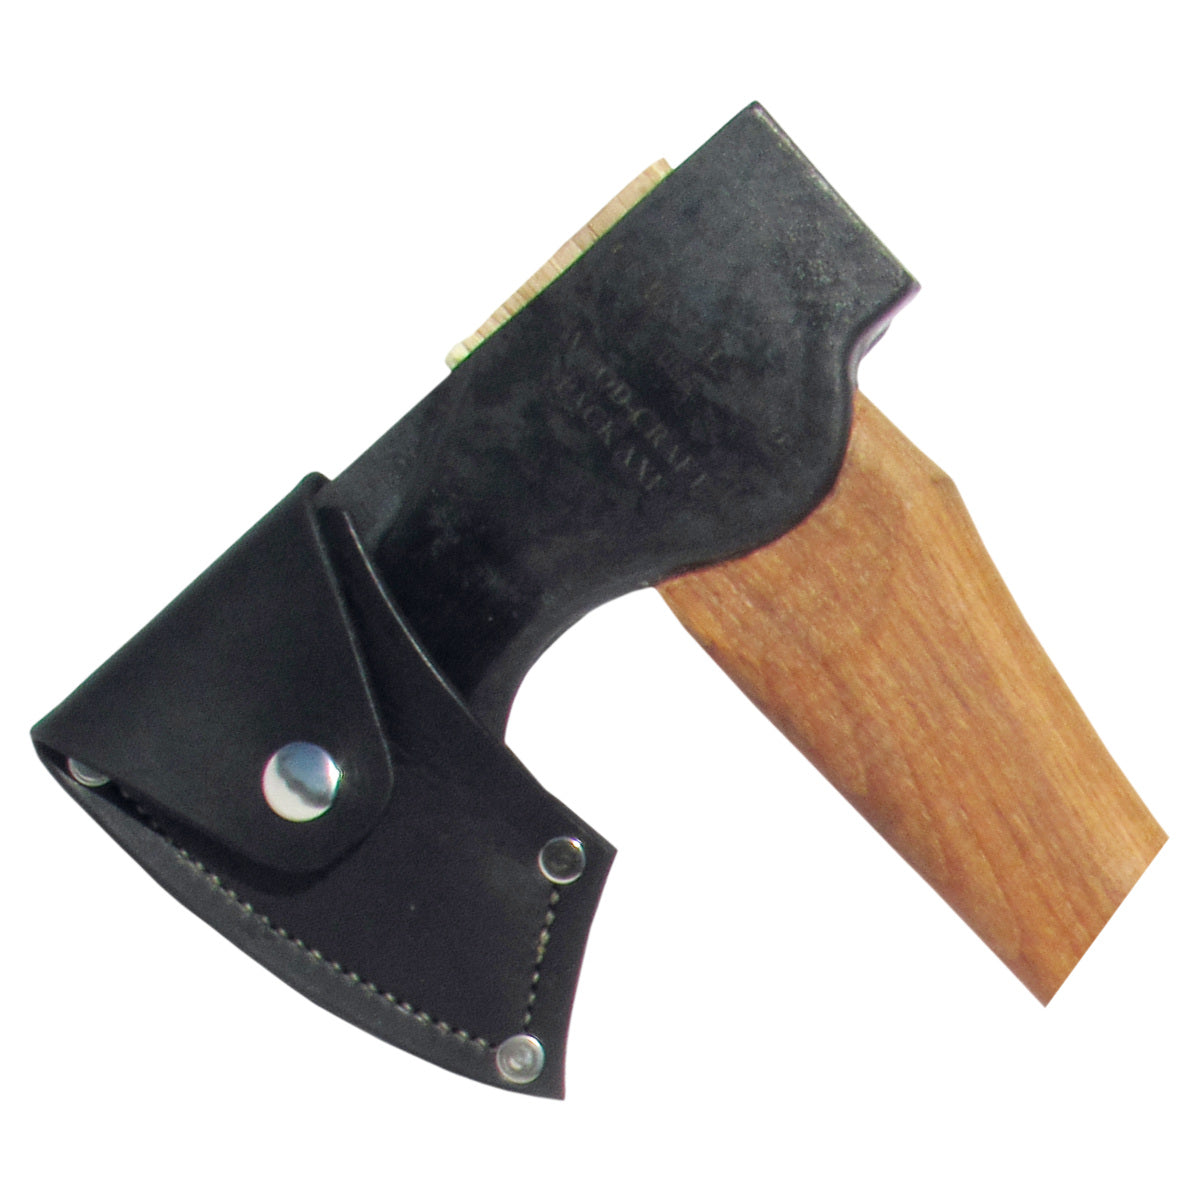 Council Tool Wood-Craft Pack Axe 24″ Curved Handle